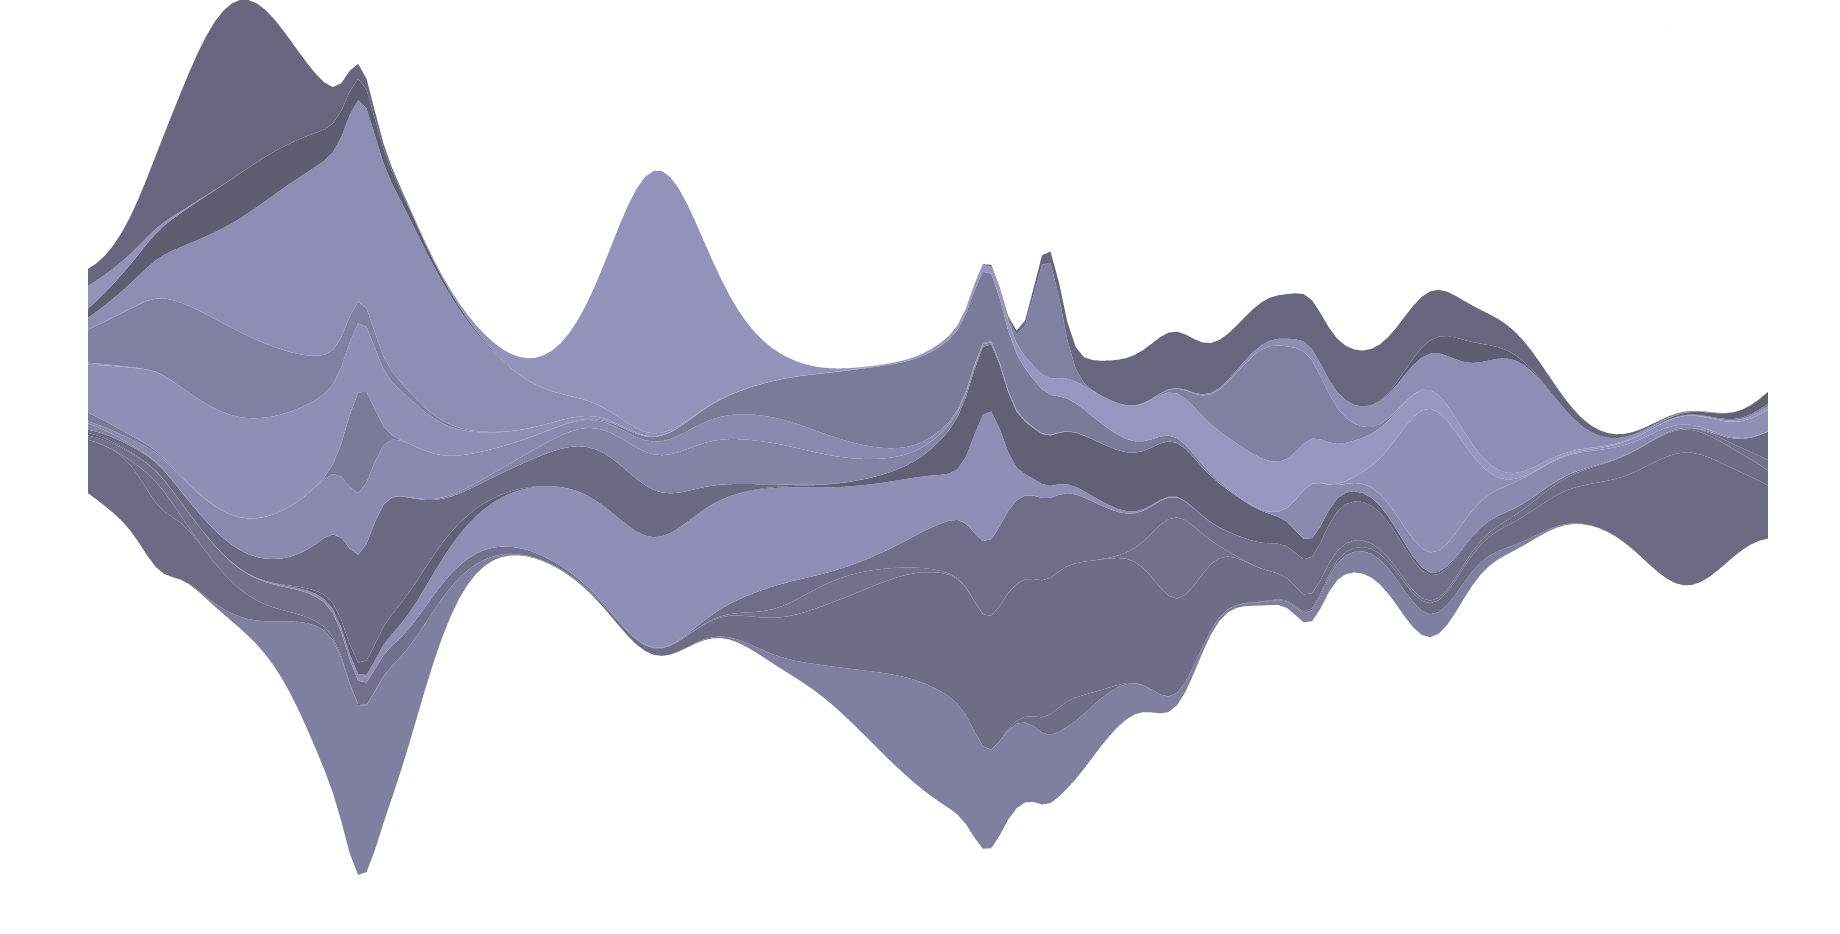 D3js_streamgraph_visualization_by_mbostock